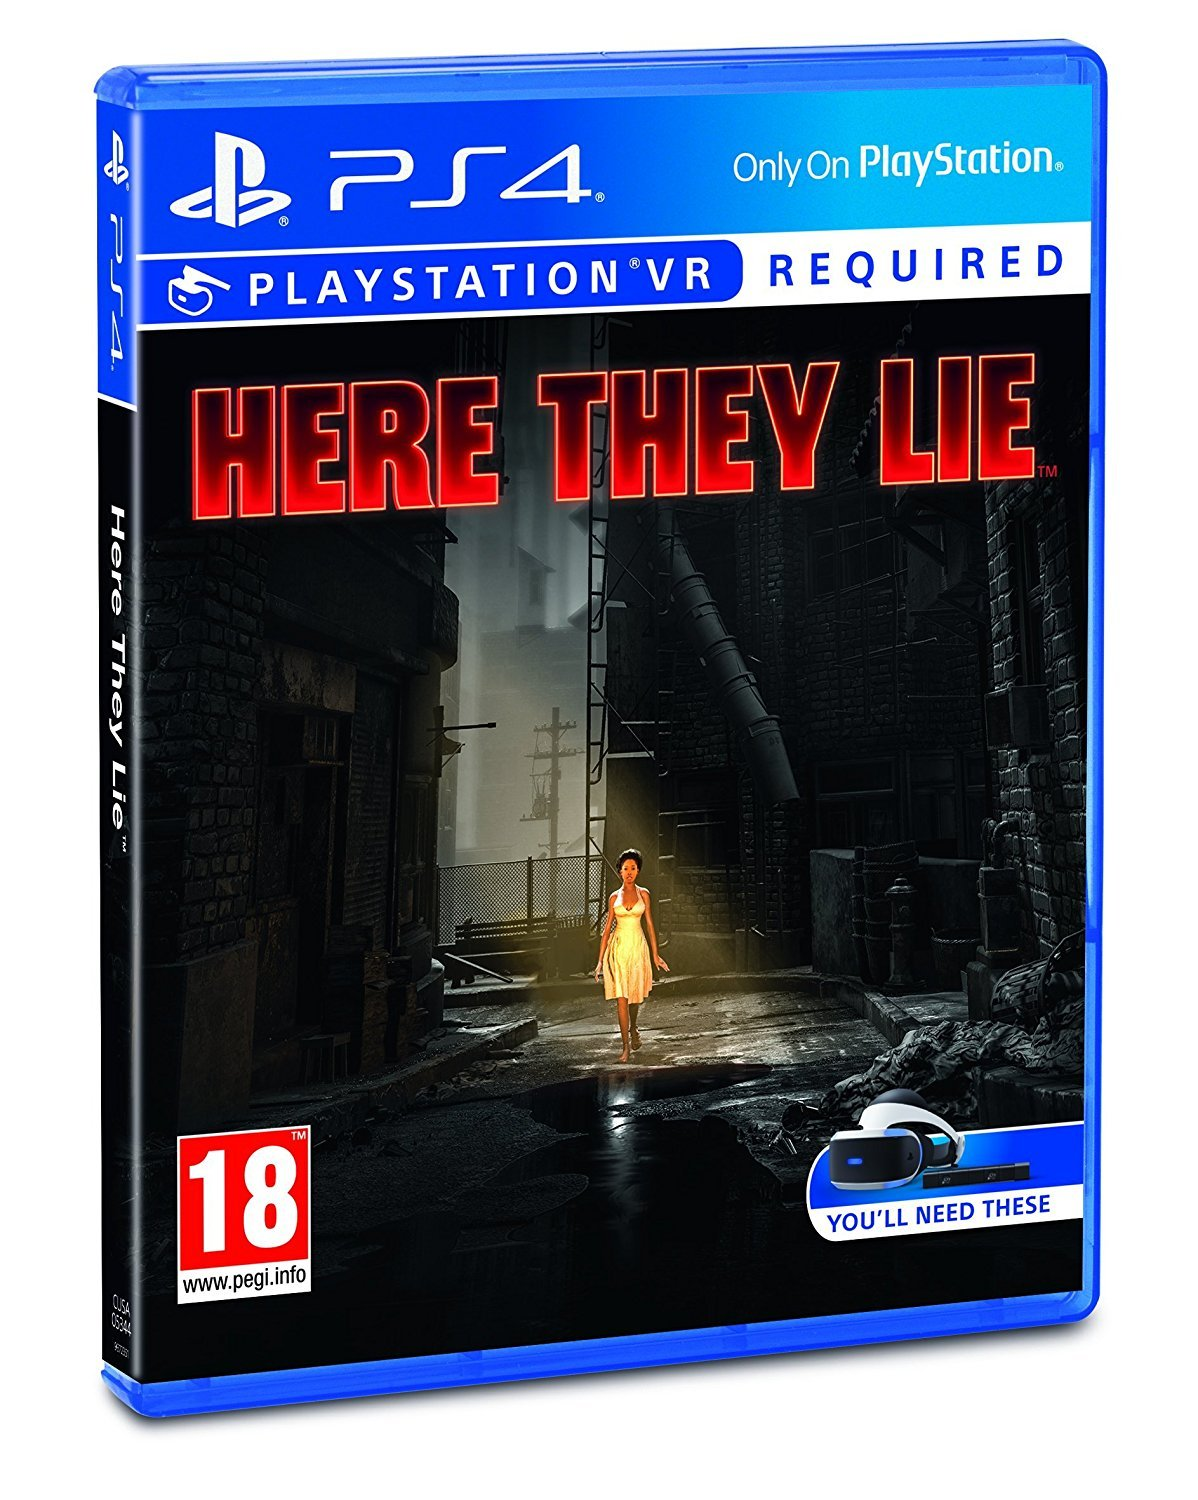 Amazon com: Here They Lie VR (PSVR): Video Games